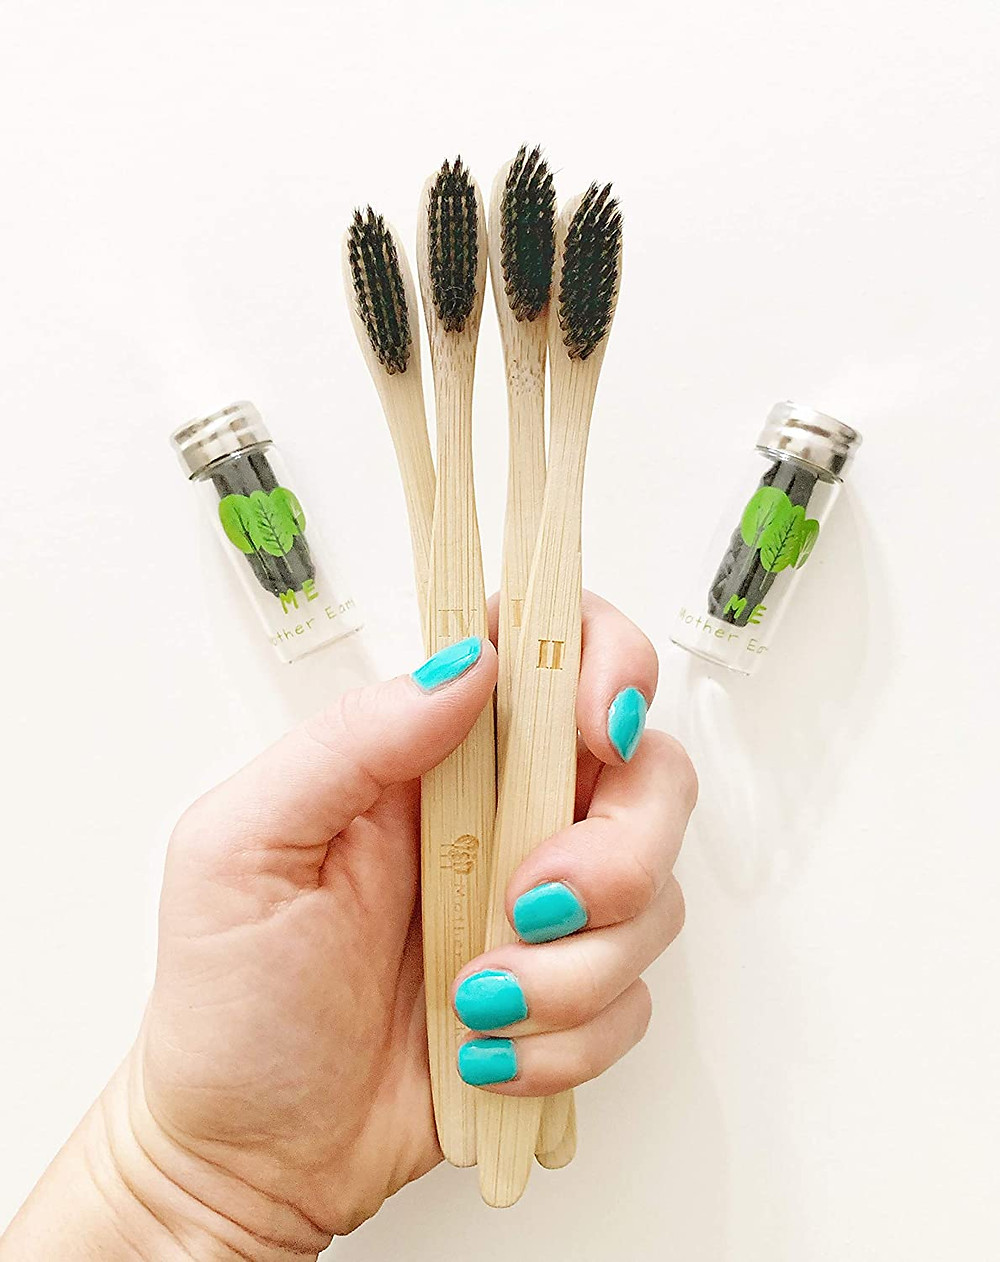 eco friendly sustainable toothbrushes made from bamboo